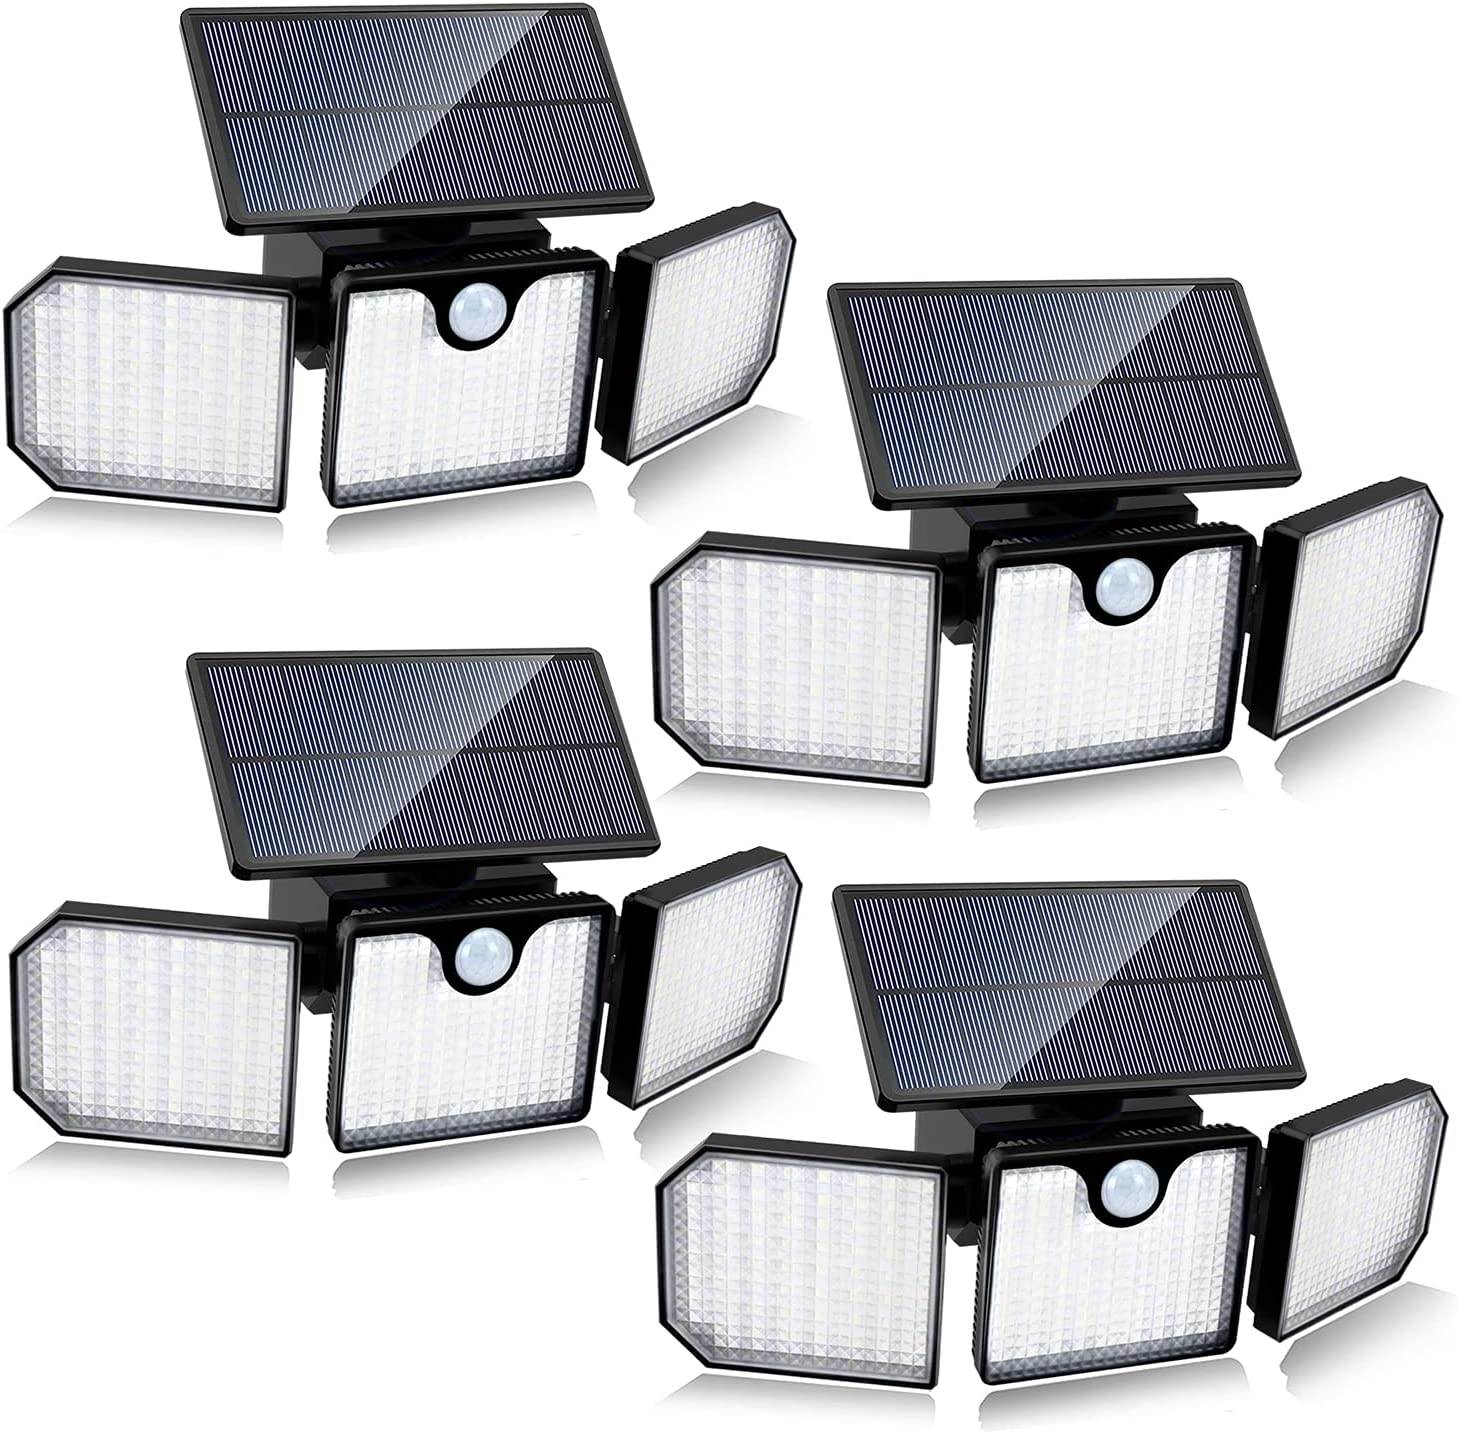 Upgrade Solar Motion Manufacturer regenerated product Lights LED Flood Outdoor Limited Special Price 230